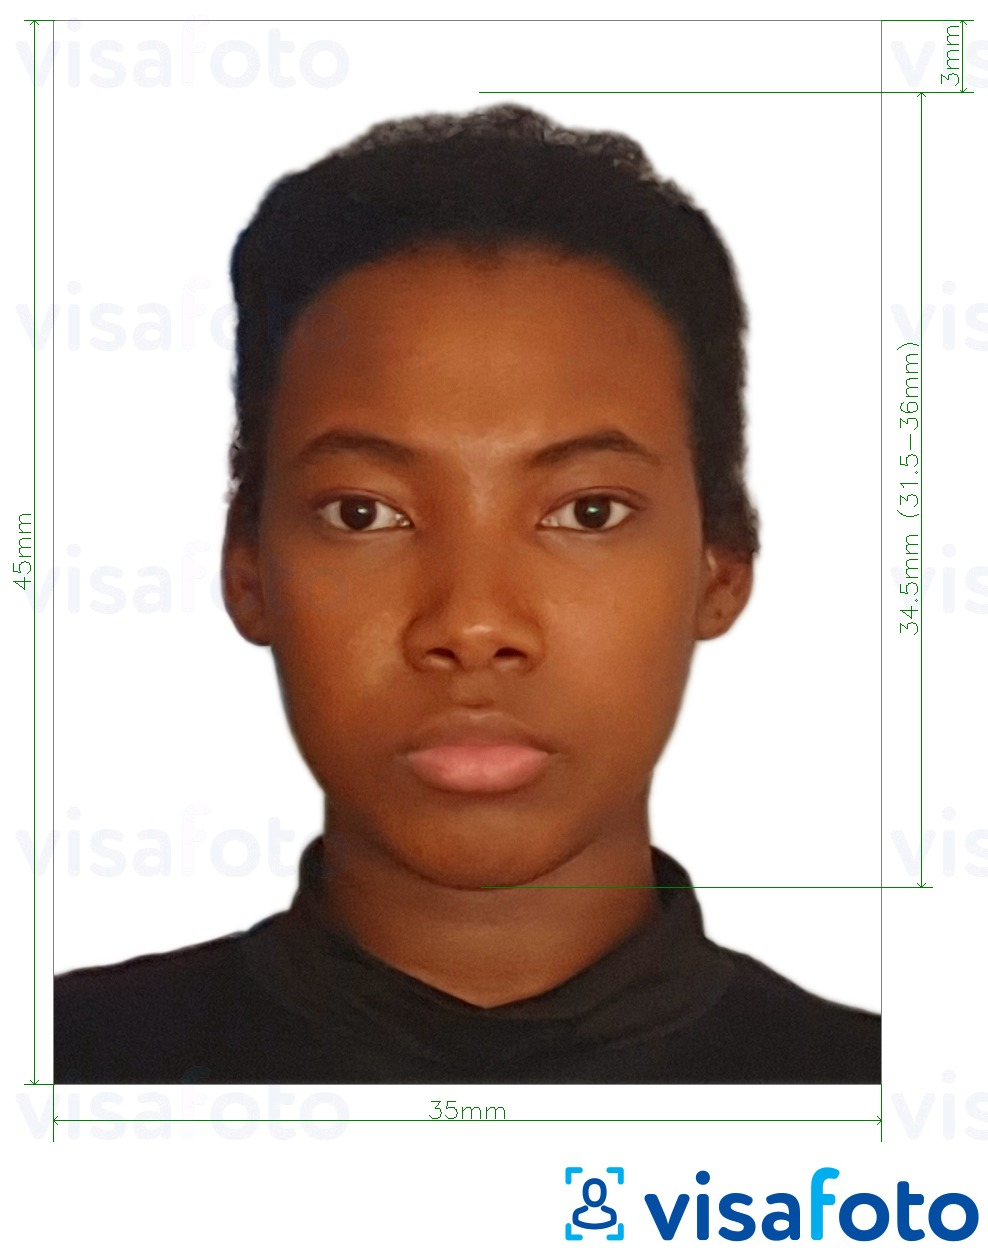 Example of photo for Equatorial Guinea visa 35x45 mm (3.5x4.5 cm) with exact size specification